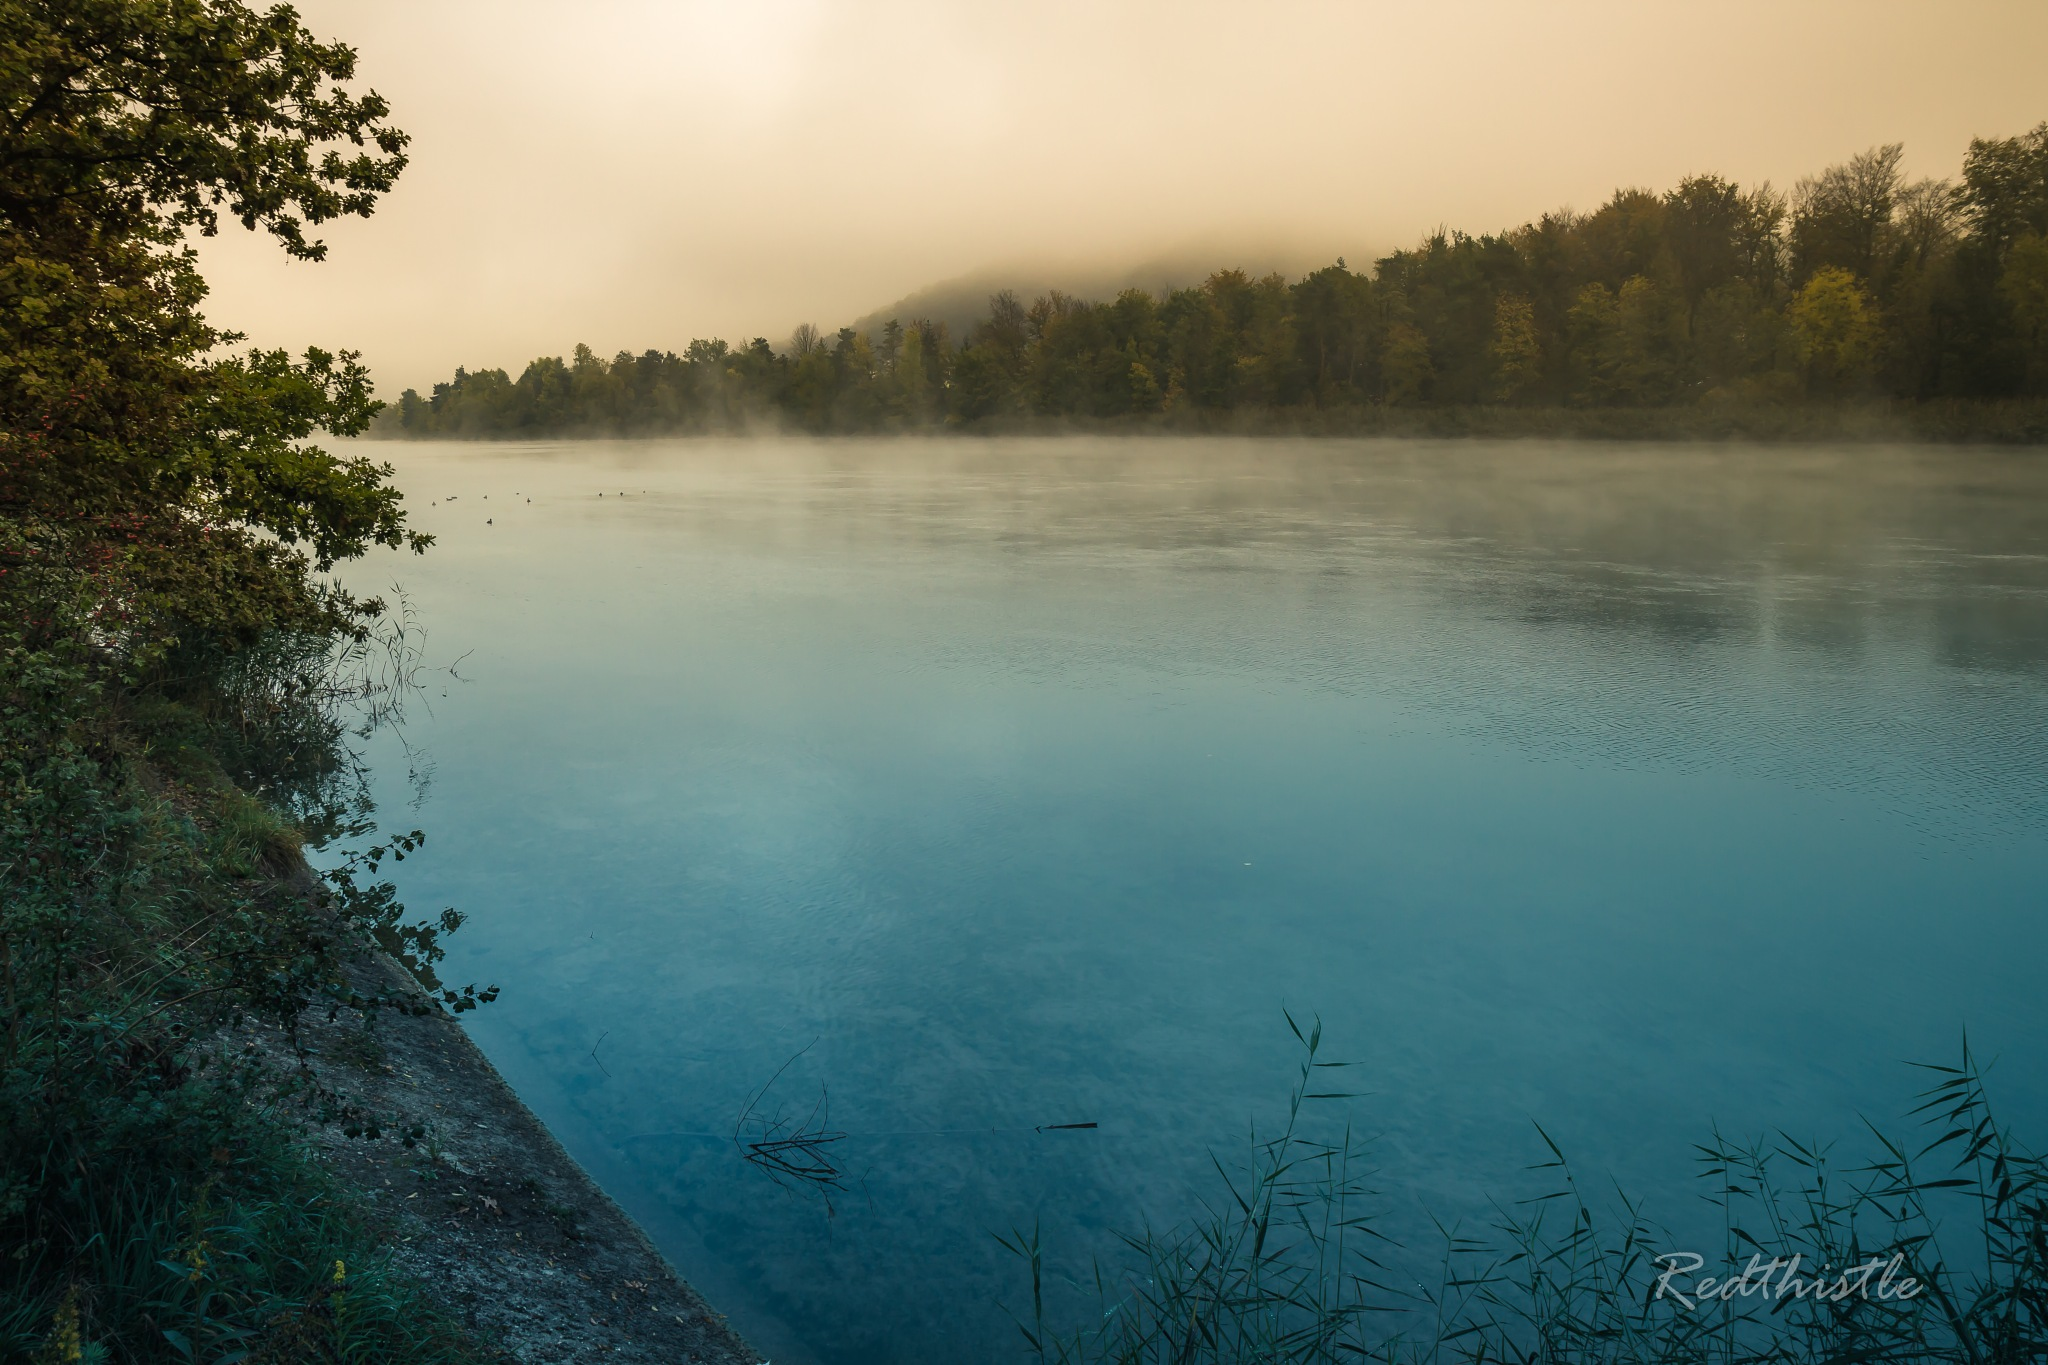 Glory morning at the river Aare... by Redthistle